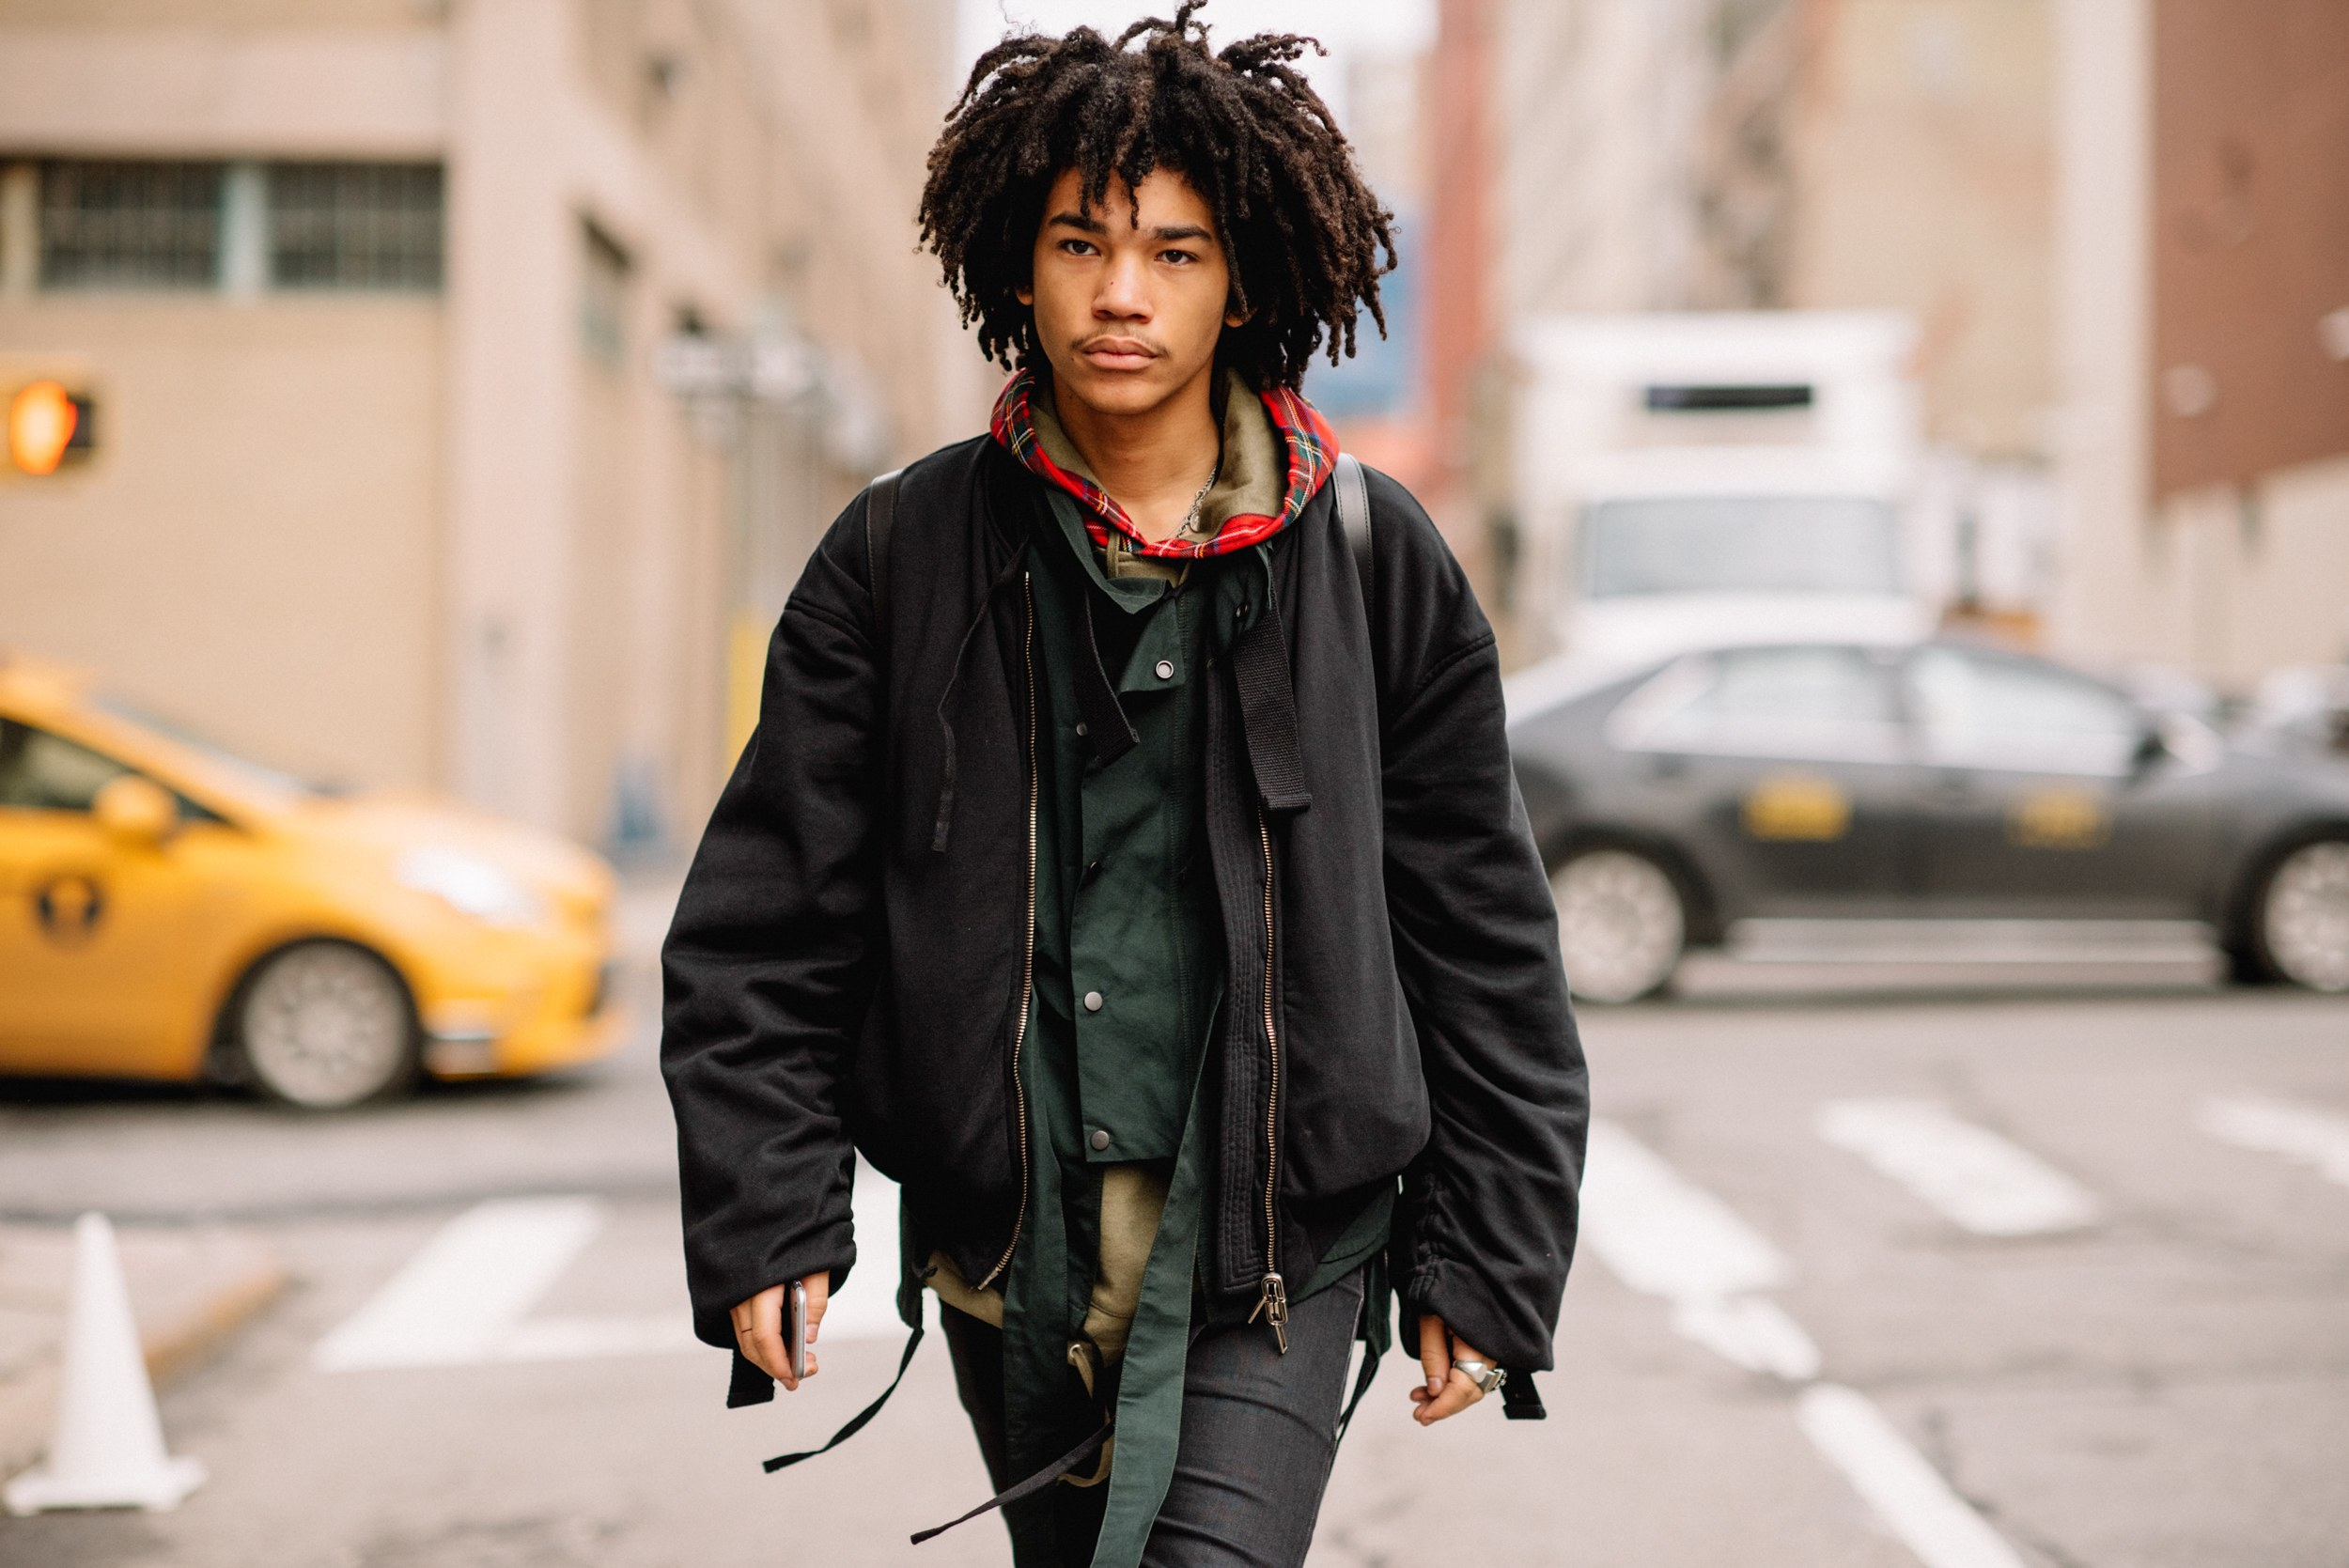 street fashion the best street style from new york fashion week: menu0027s photos | gq XWTNYJT